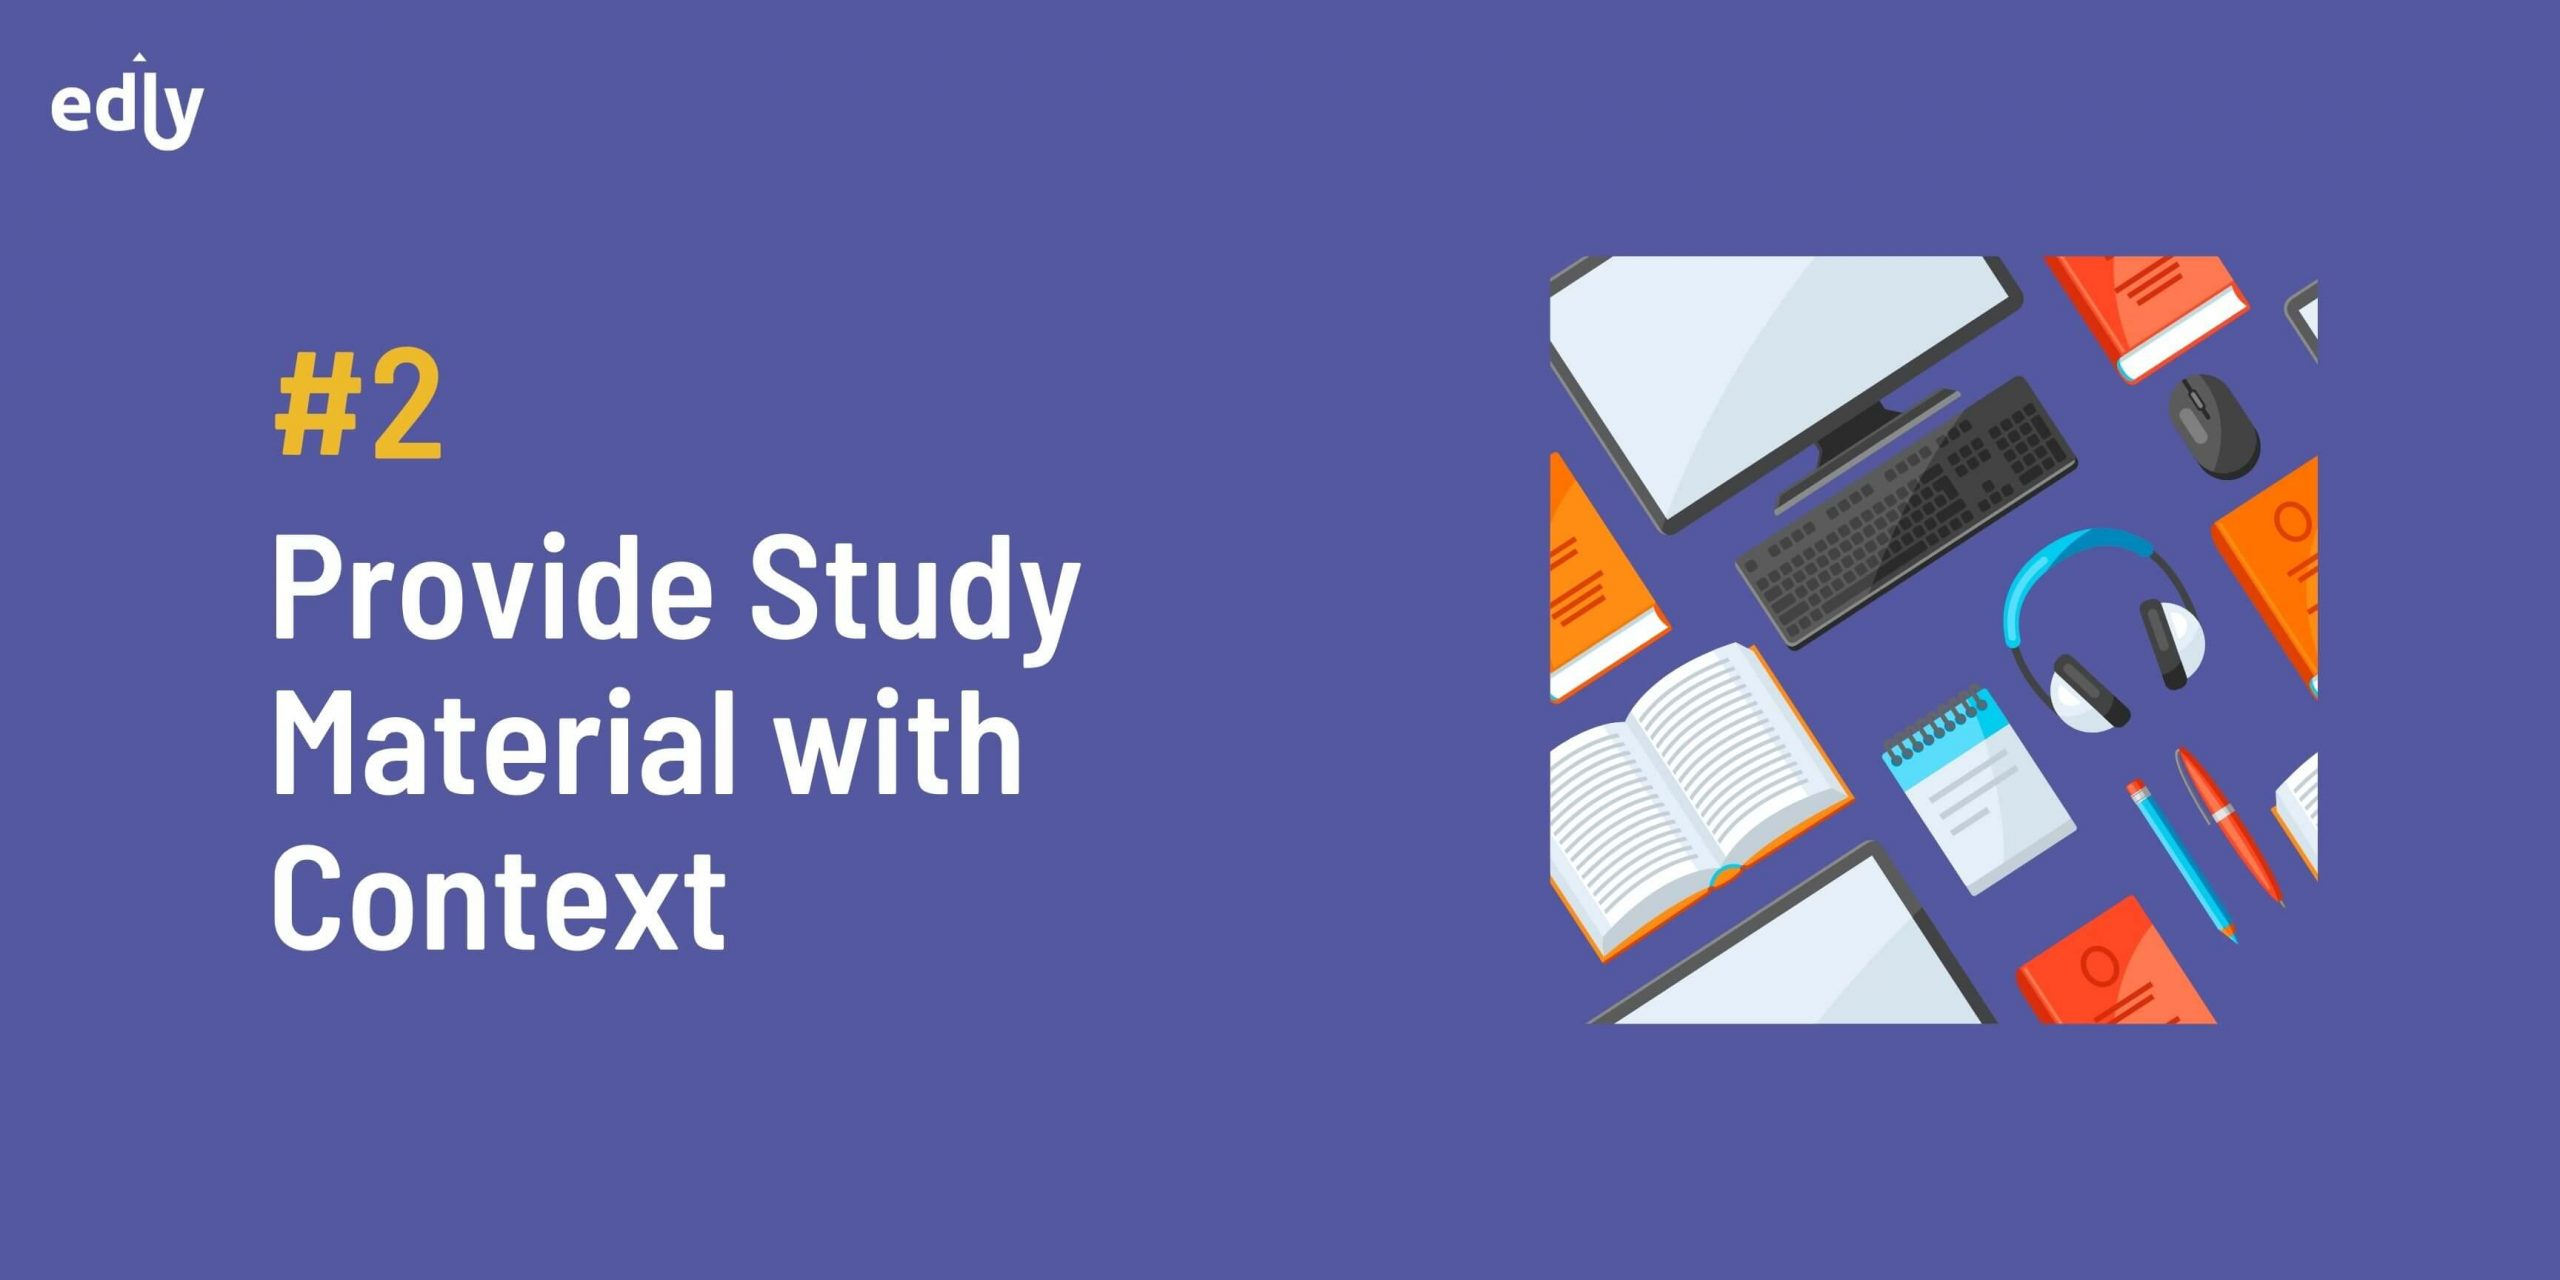 Provide Study Material with Context